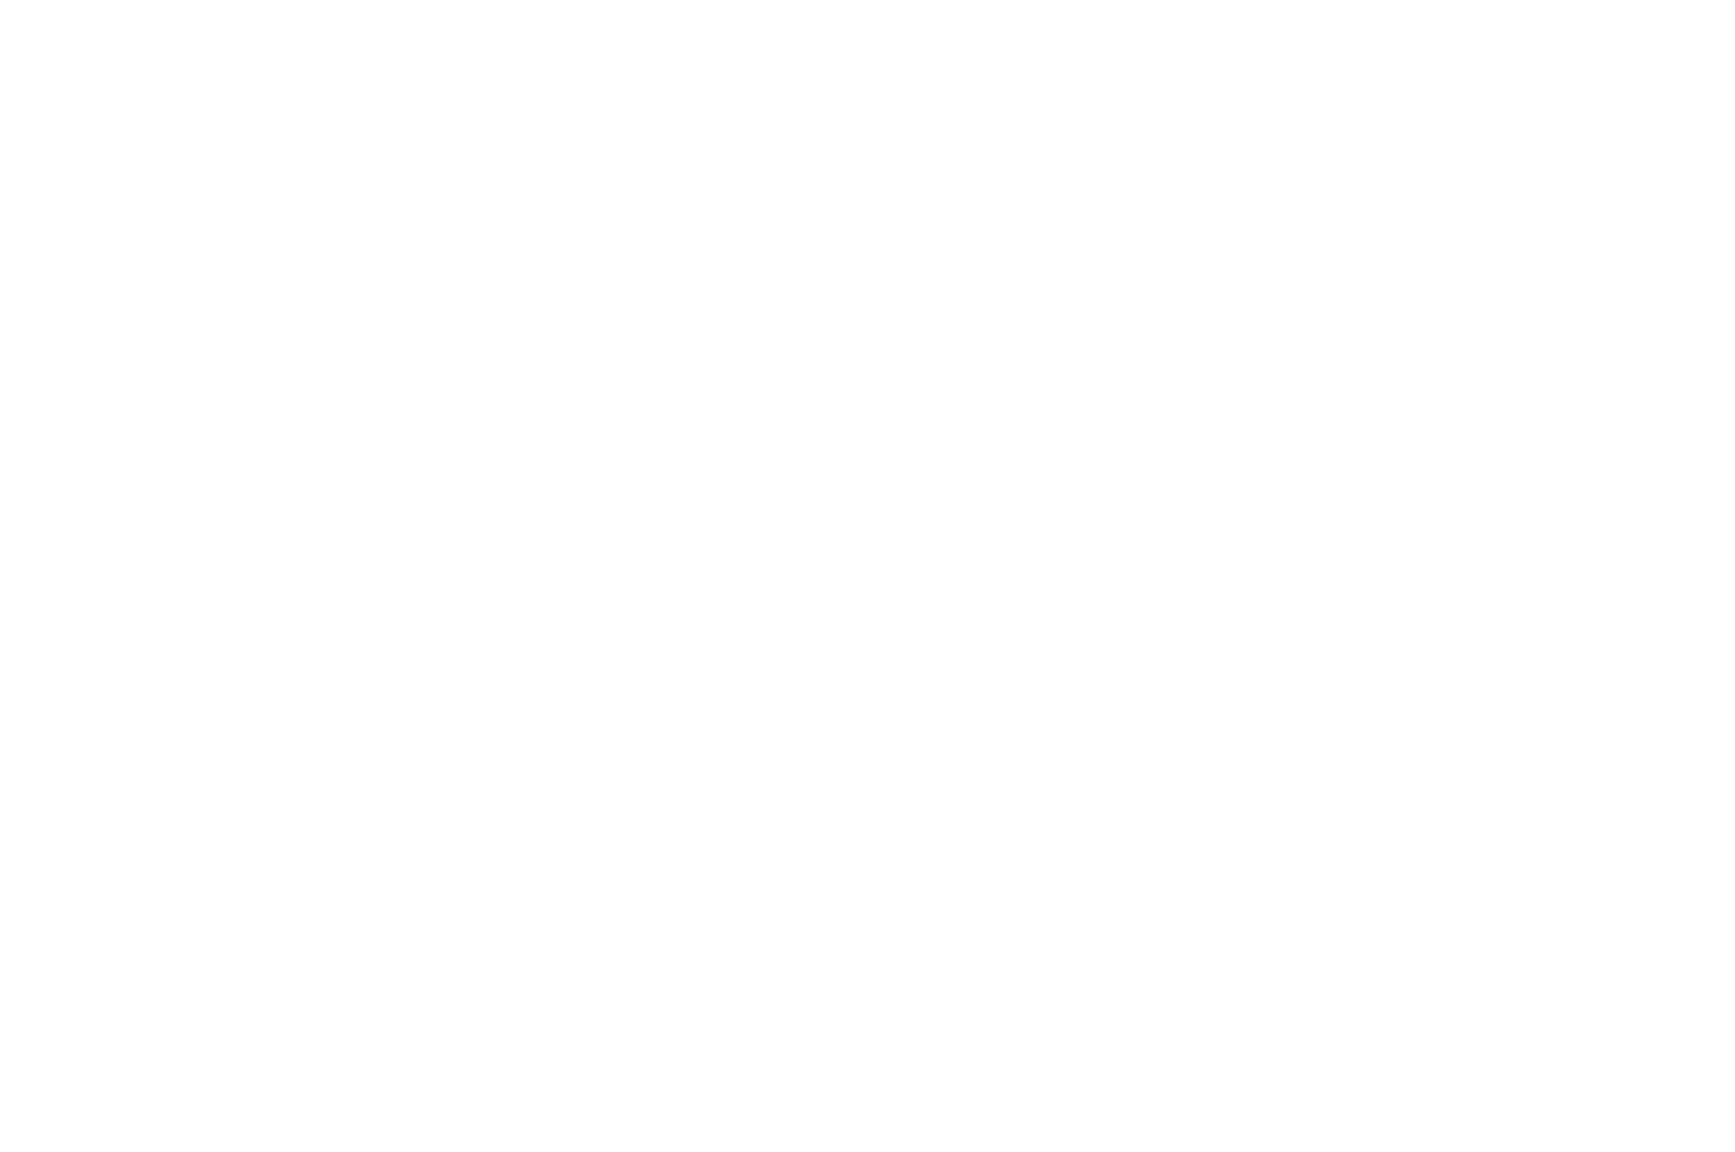 BEST COMEDY SCENE NOMINATION - AOF Festival Writers Awards